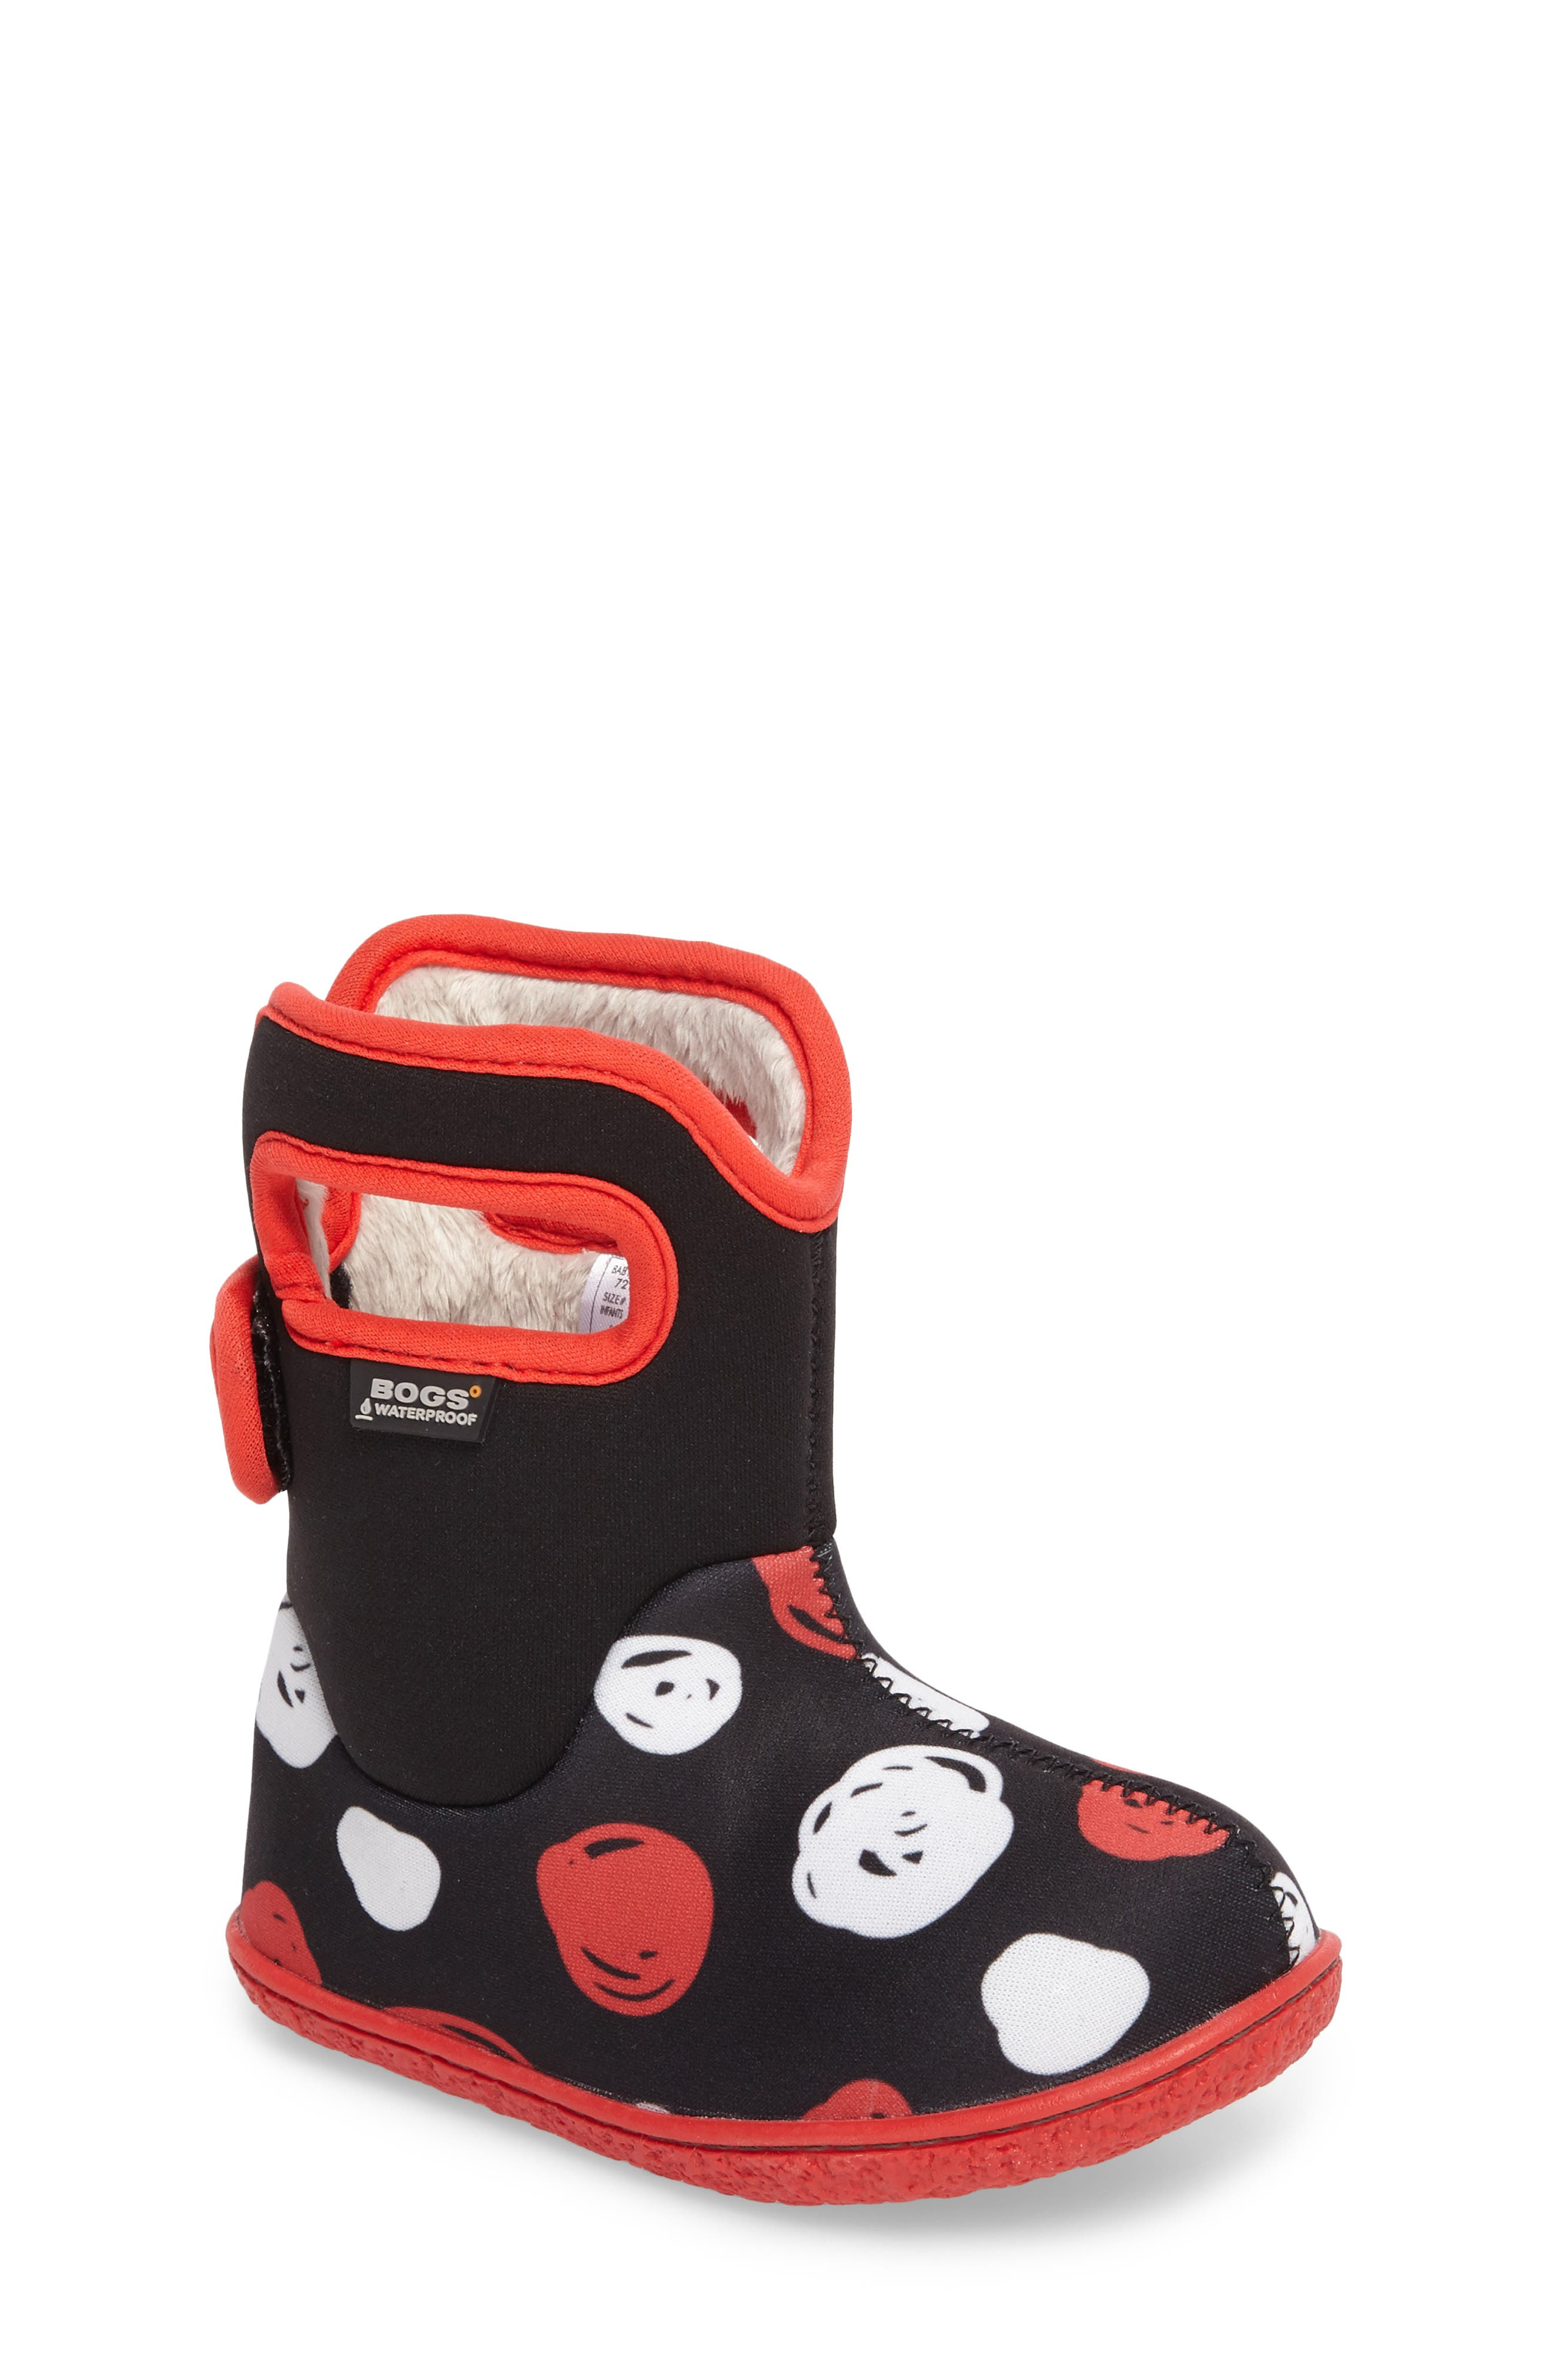 Alternate Image 1 Selected - Bogs Baby Bogs Classic Sketched Dots Washable Insulated Waterproof Boot (Baby, Walker & Toddler)